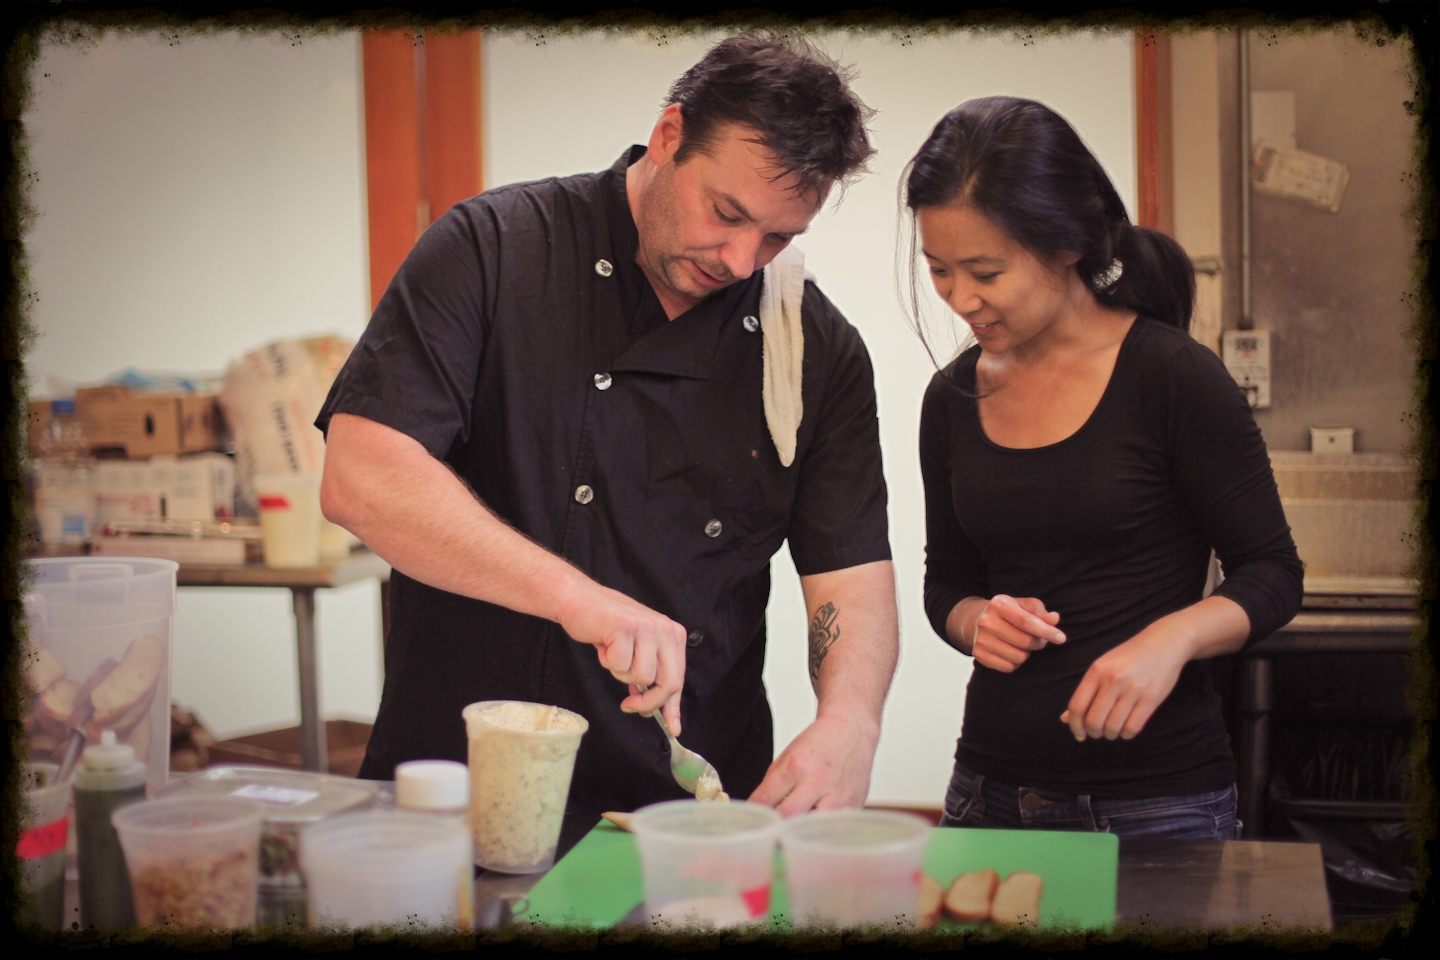 Chef Jamie Harrington, Executive Chef at Harrington Catering | Guest Chef at The San Francisco Blind Cafe